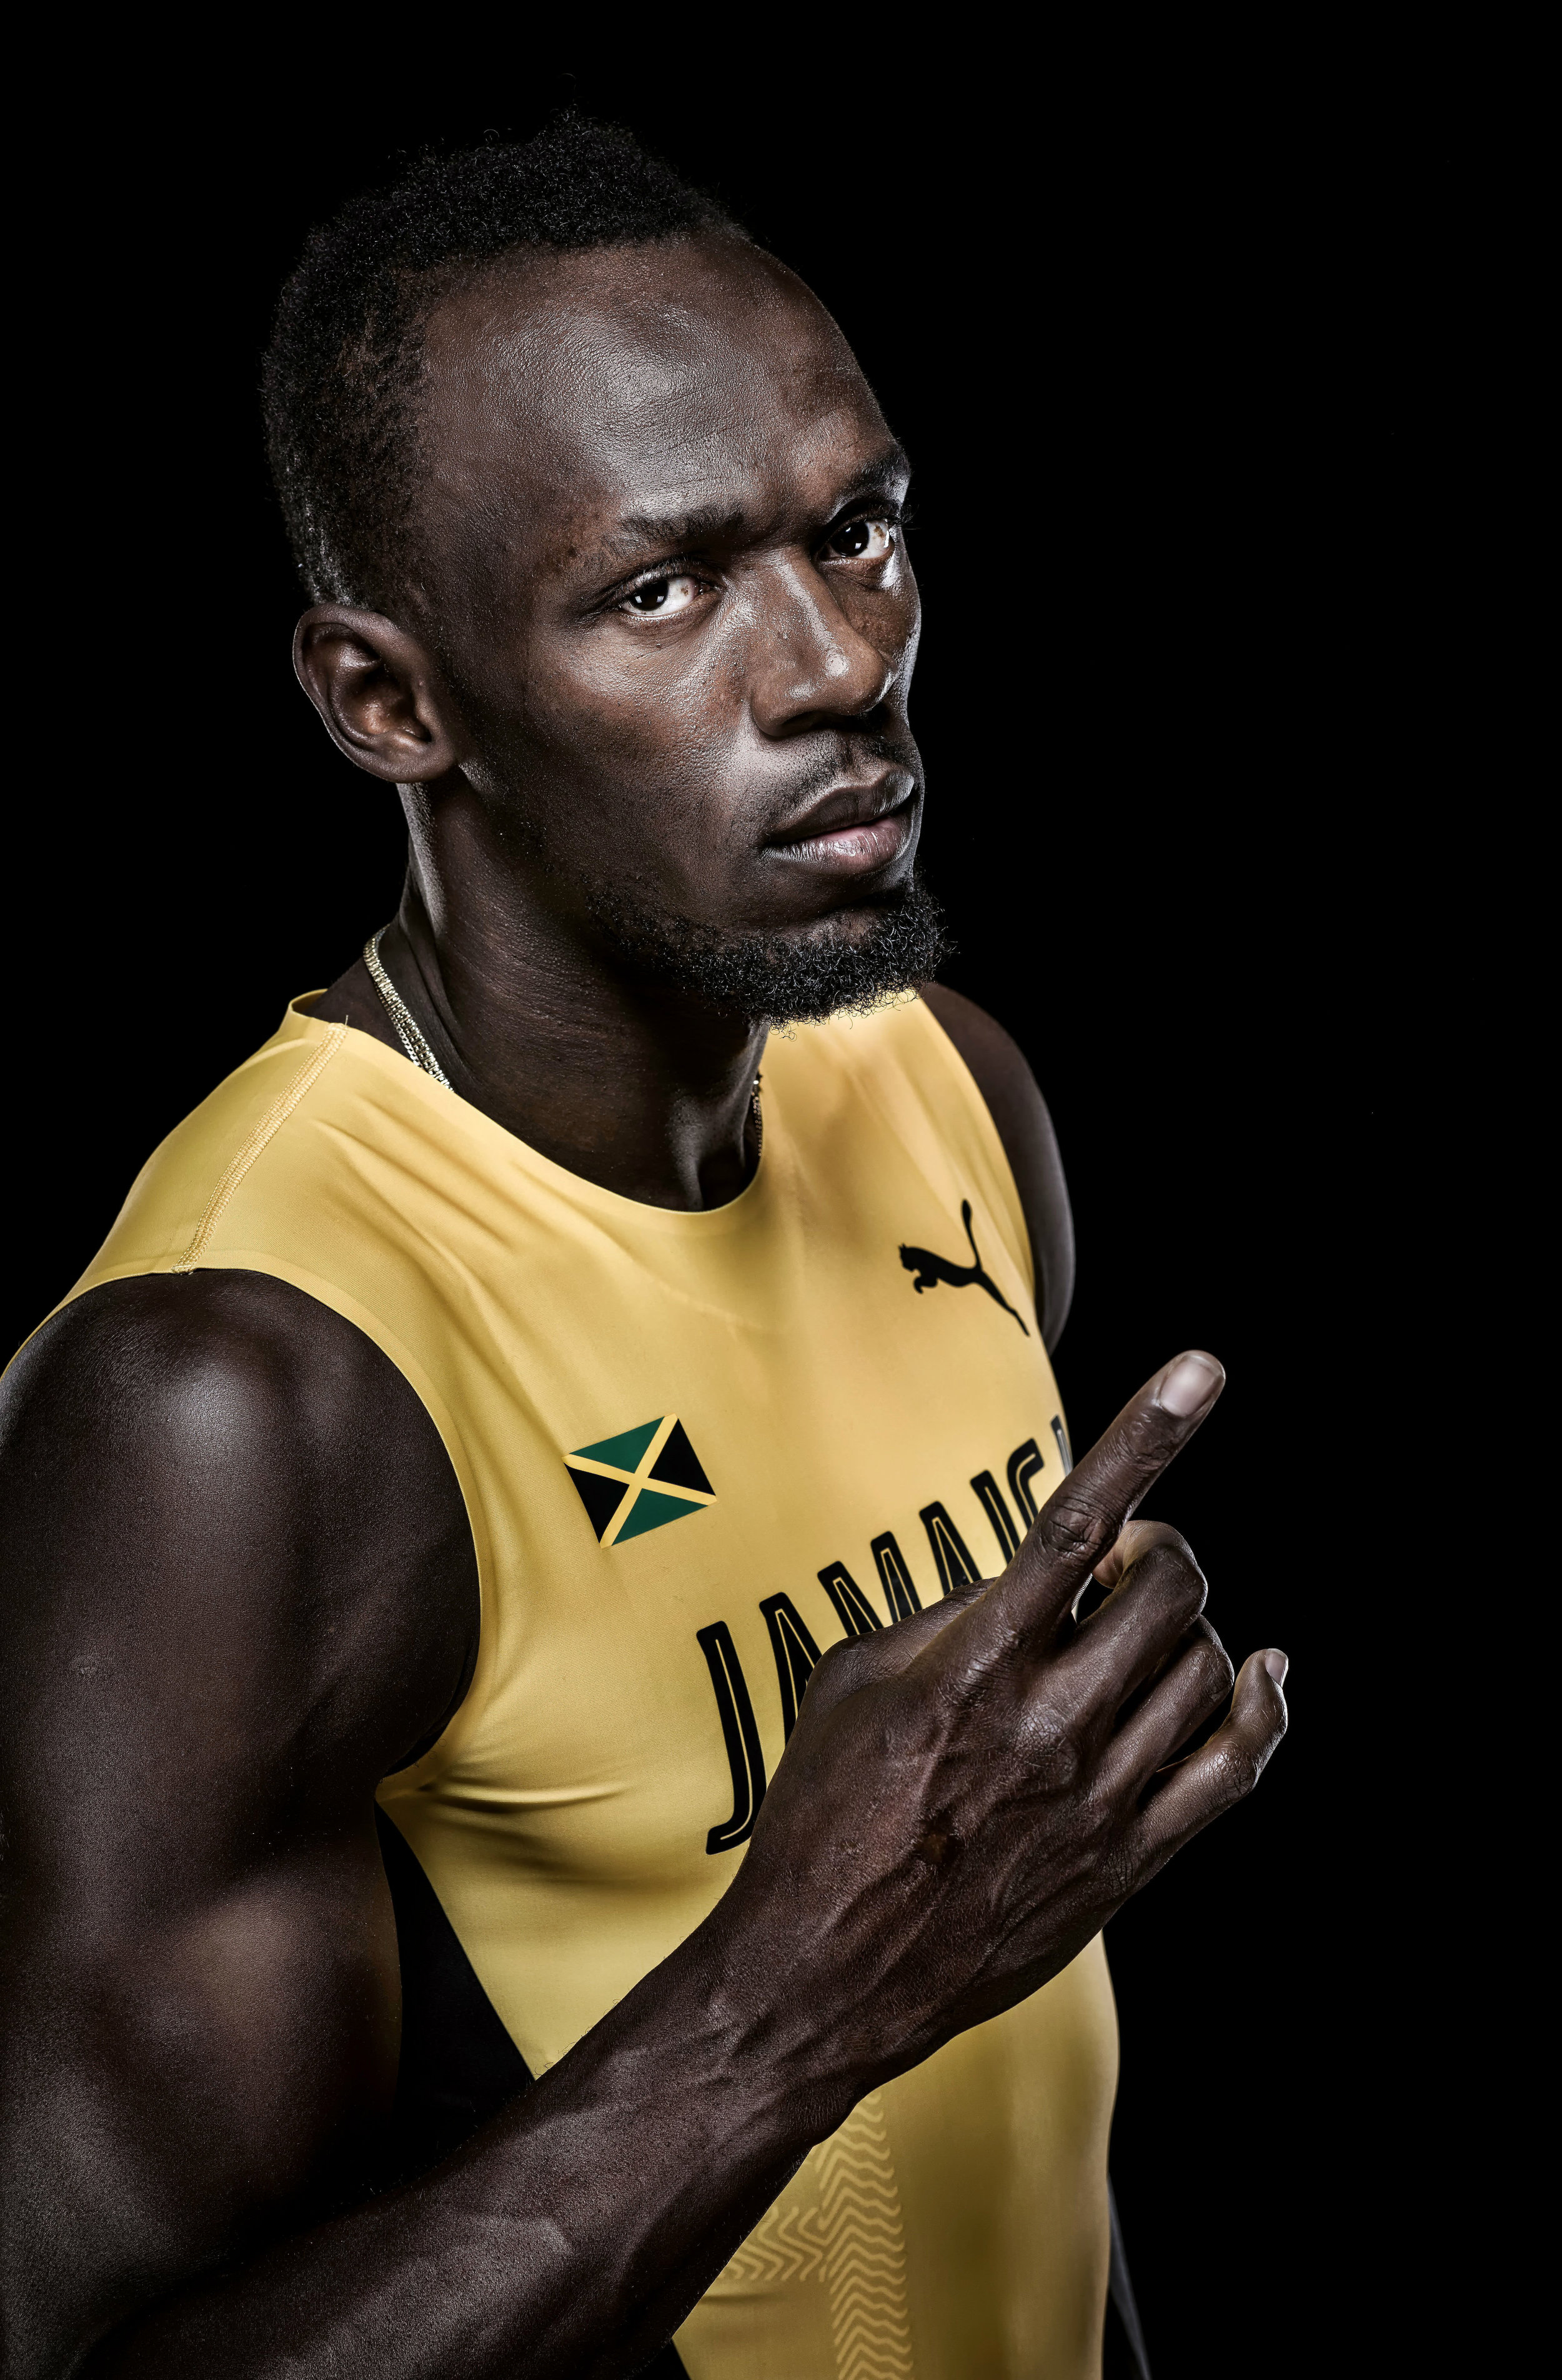 USAIN BOLT JUST AFTER HIS RETIREMENT FROM ATHLETICS, BUT STILL NUMBER ONE